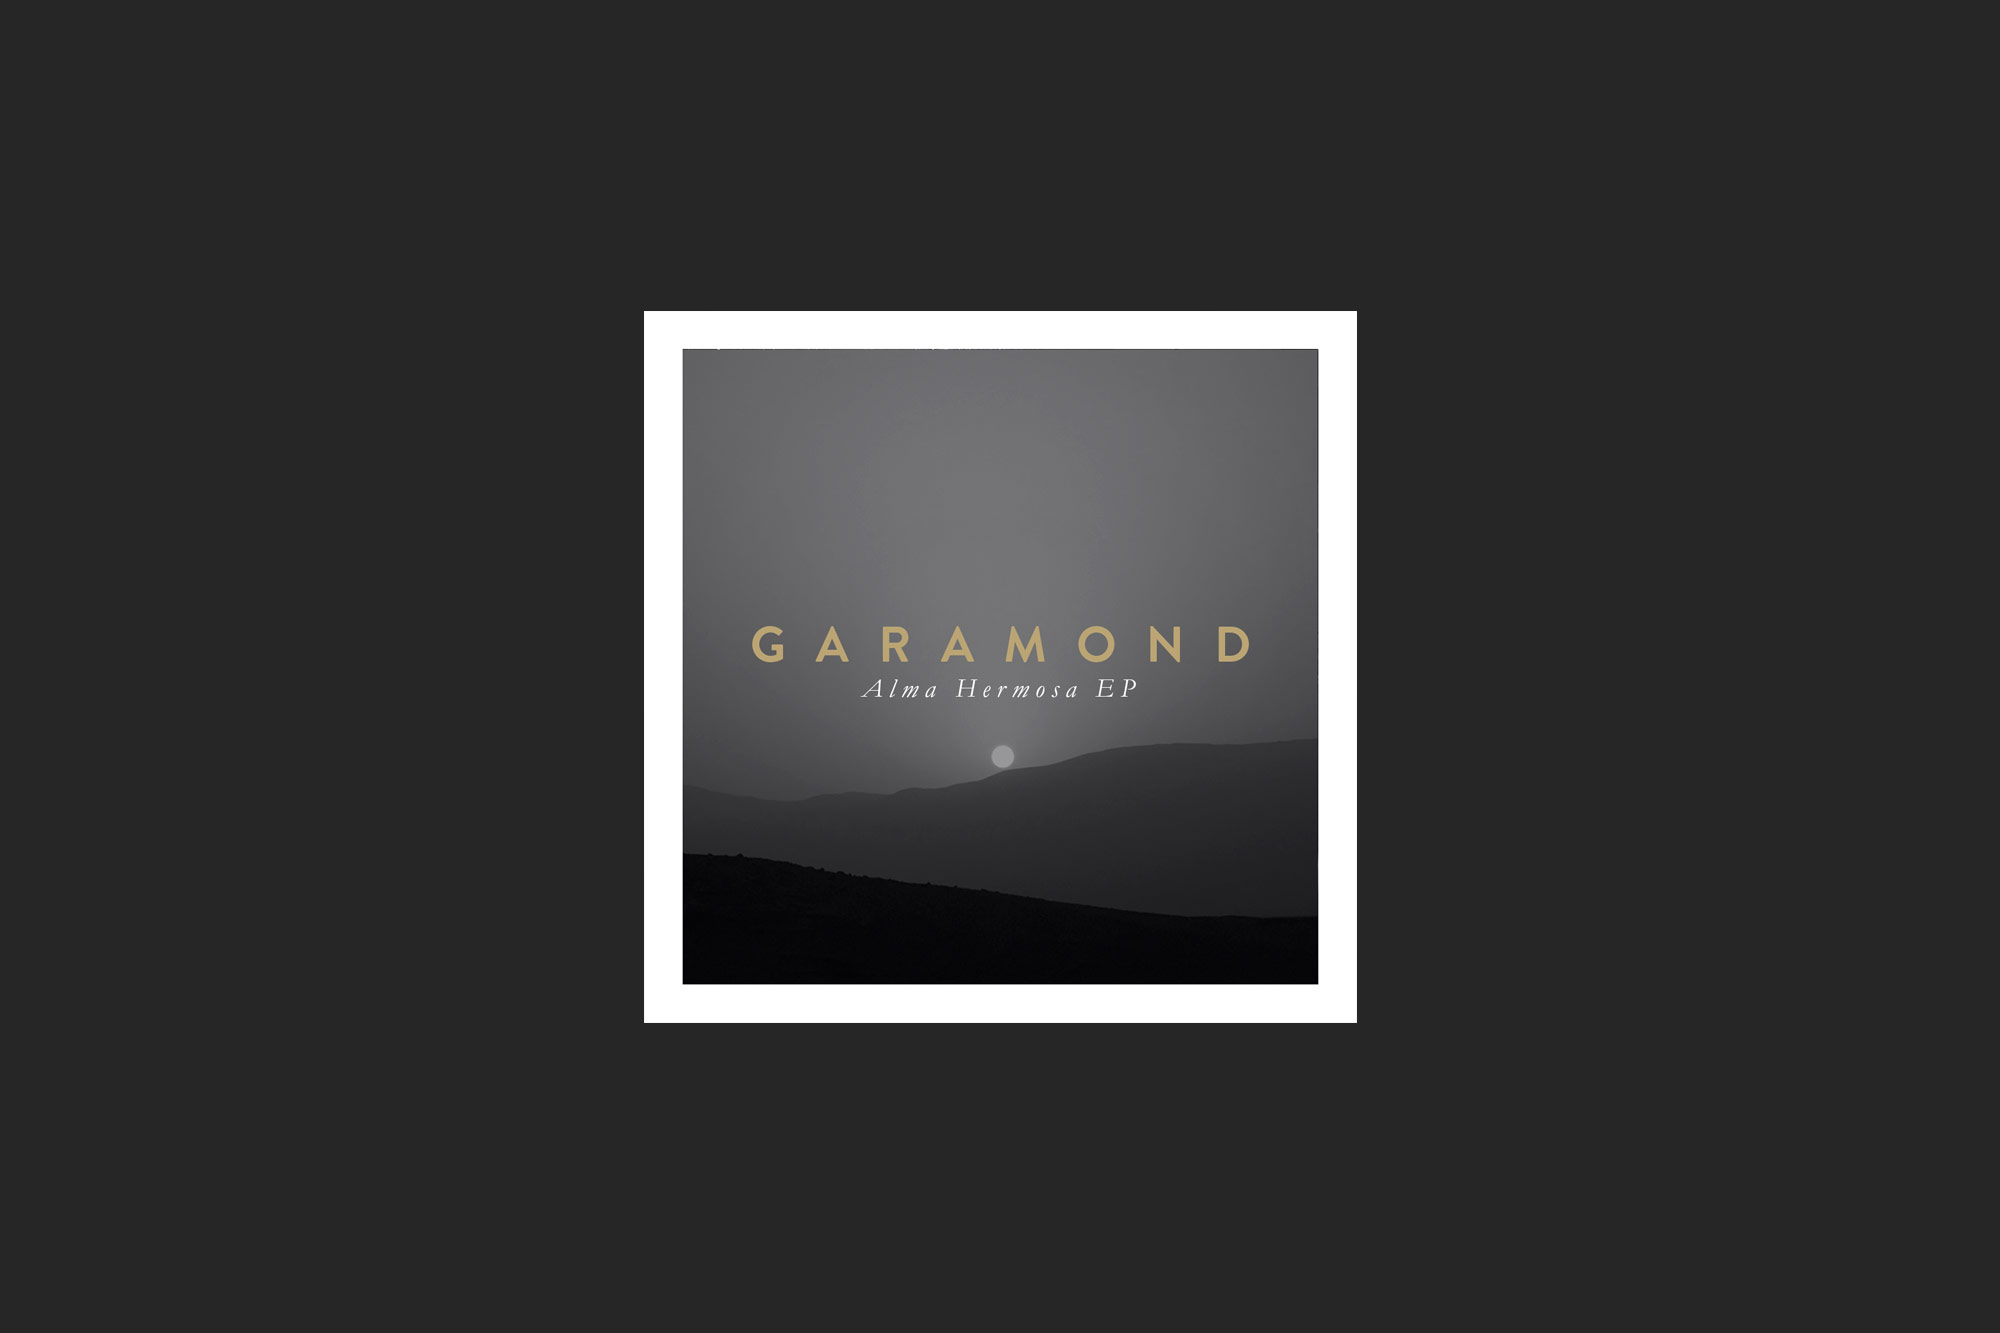 gpj-design-garamond-music-cs-02